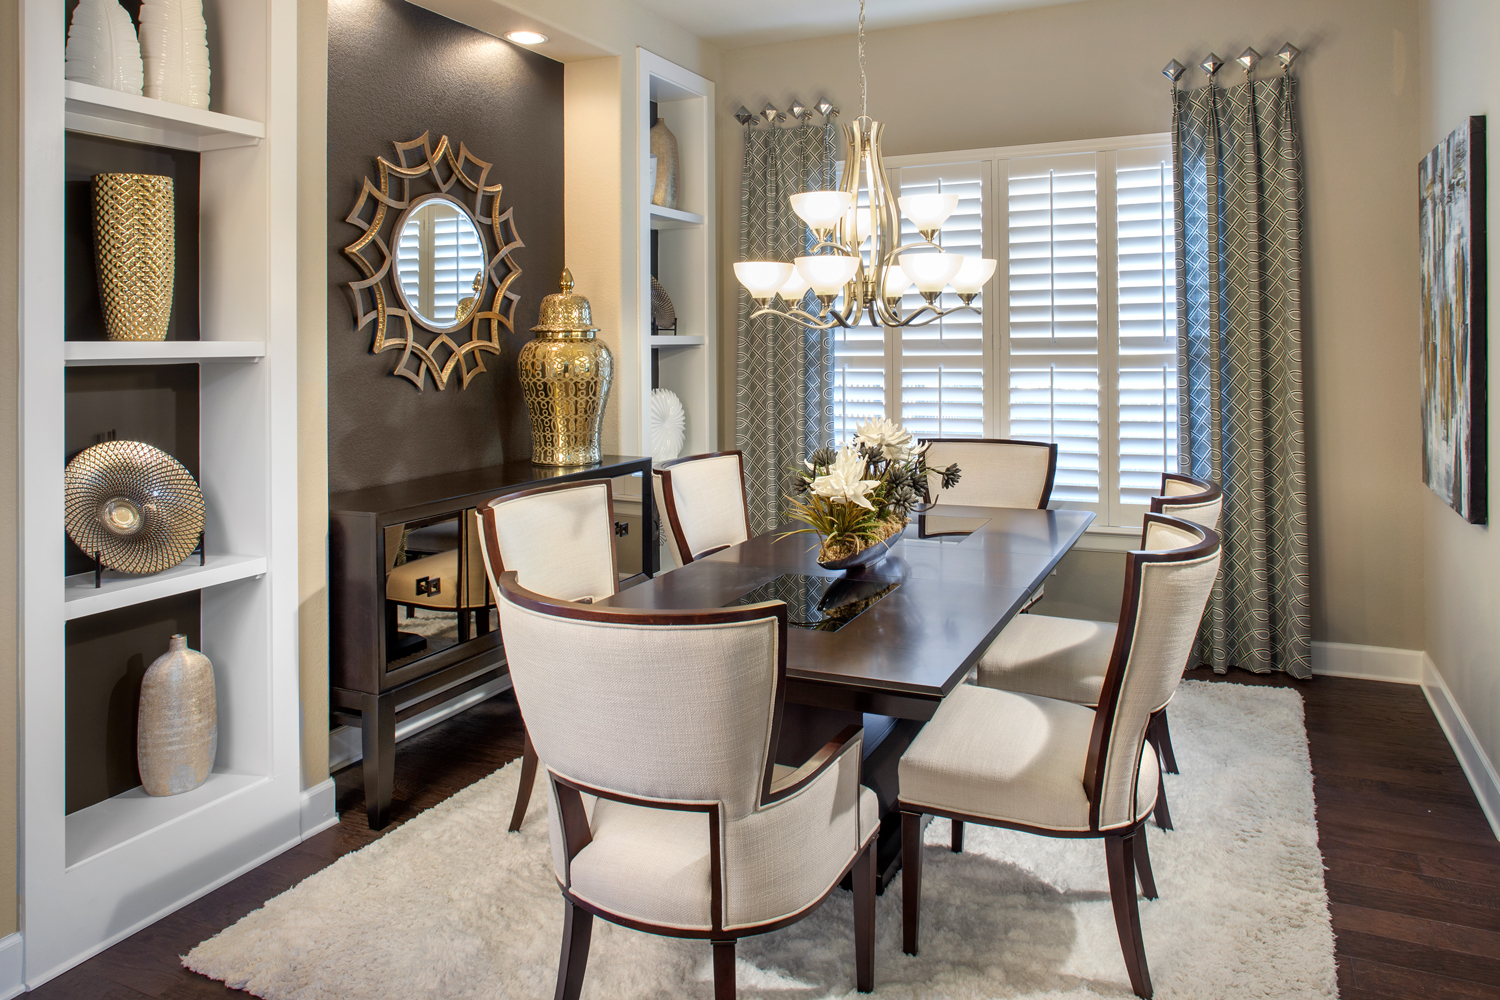 Dining-Room--Grand-Haven-Pearson-Place---7020--Guilded-Tranquility-(2).jpg